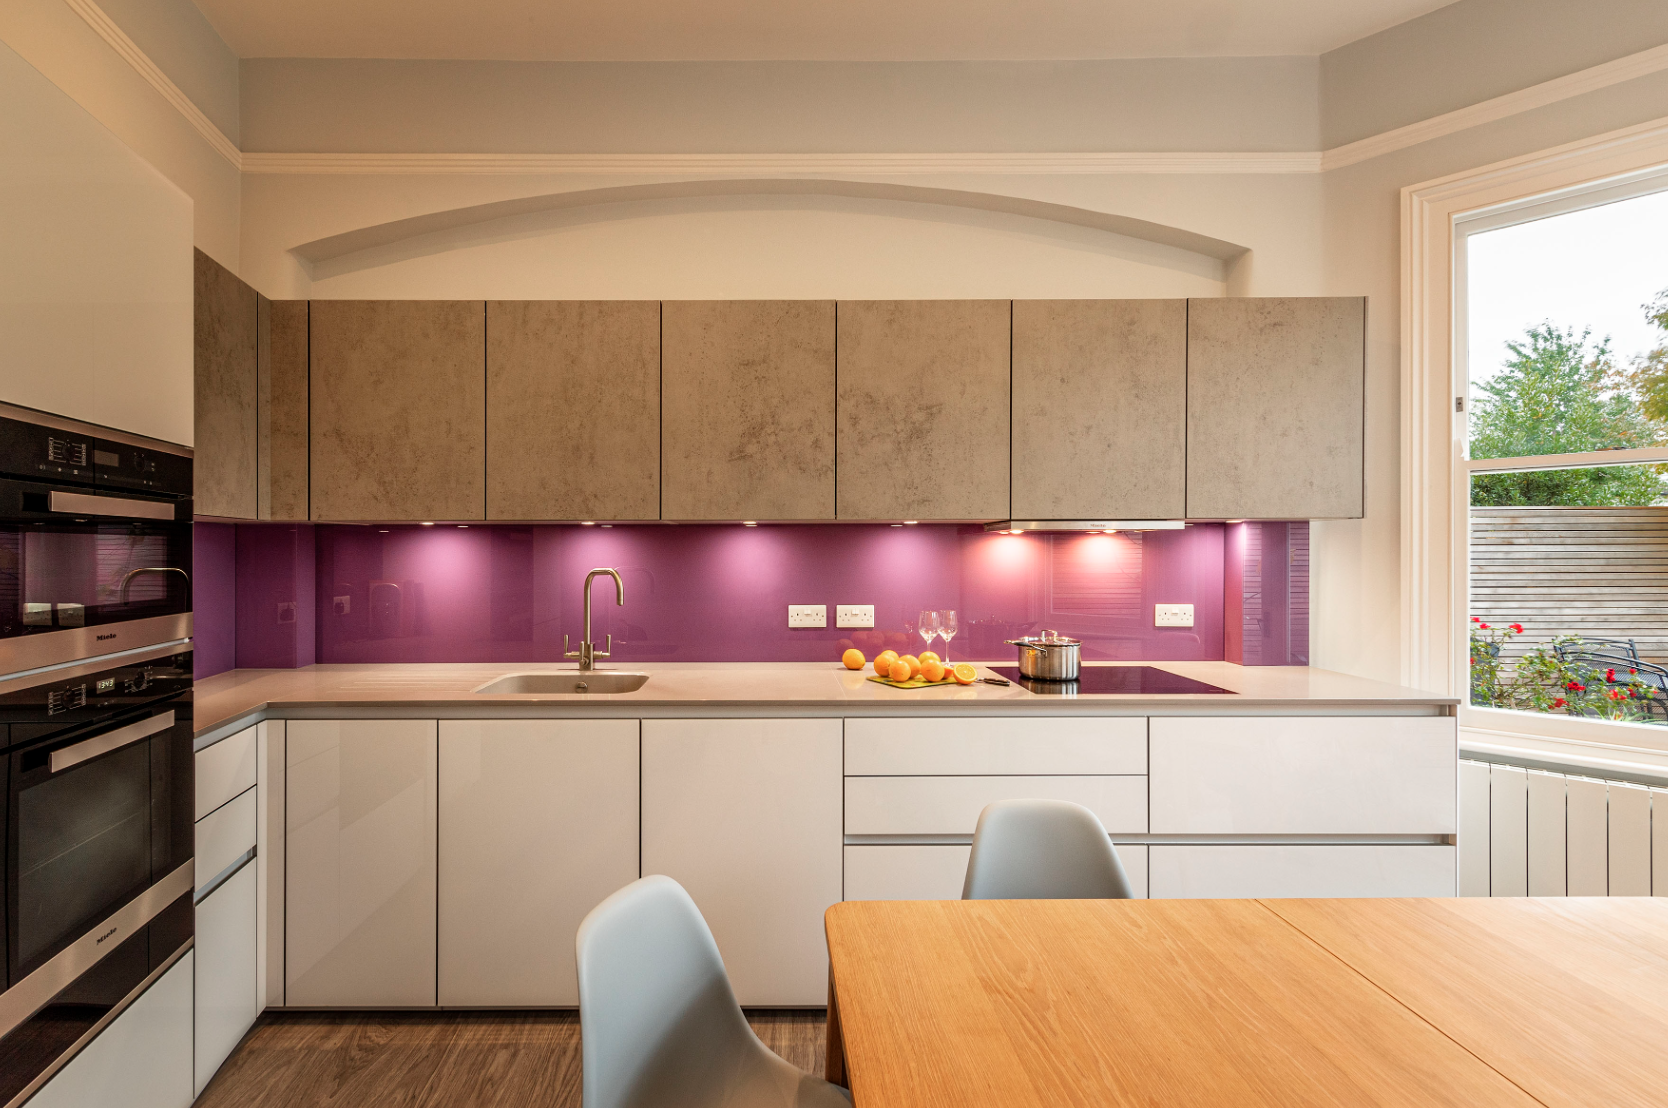 How To Update Your Kitchen ForSummer